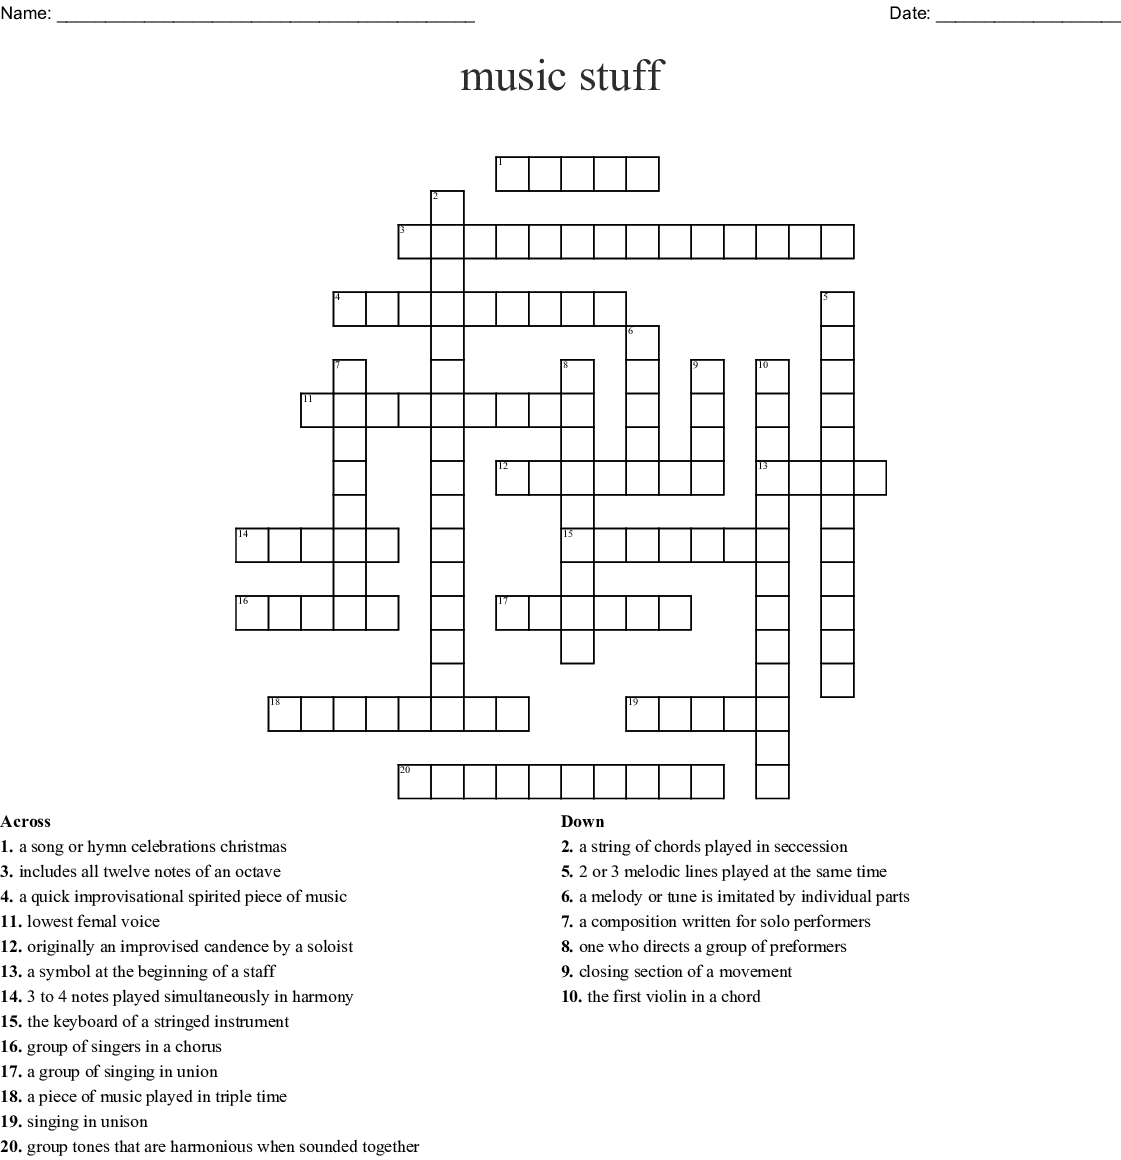 Music Terms Crossword Wordmint